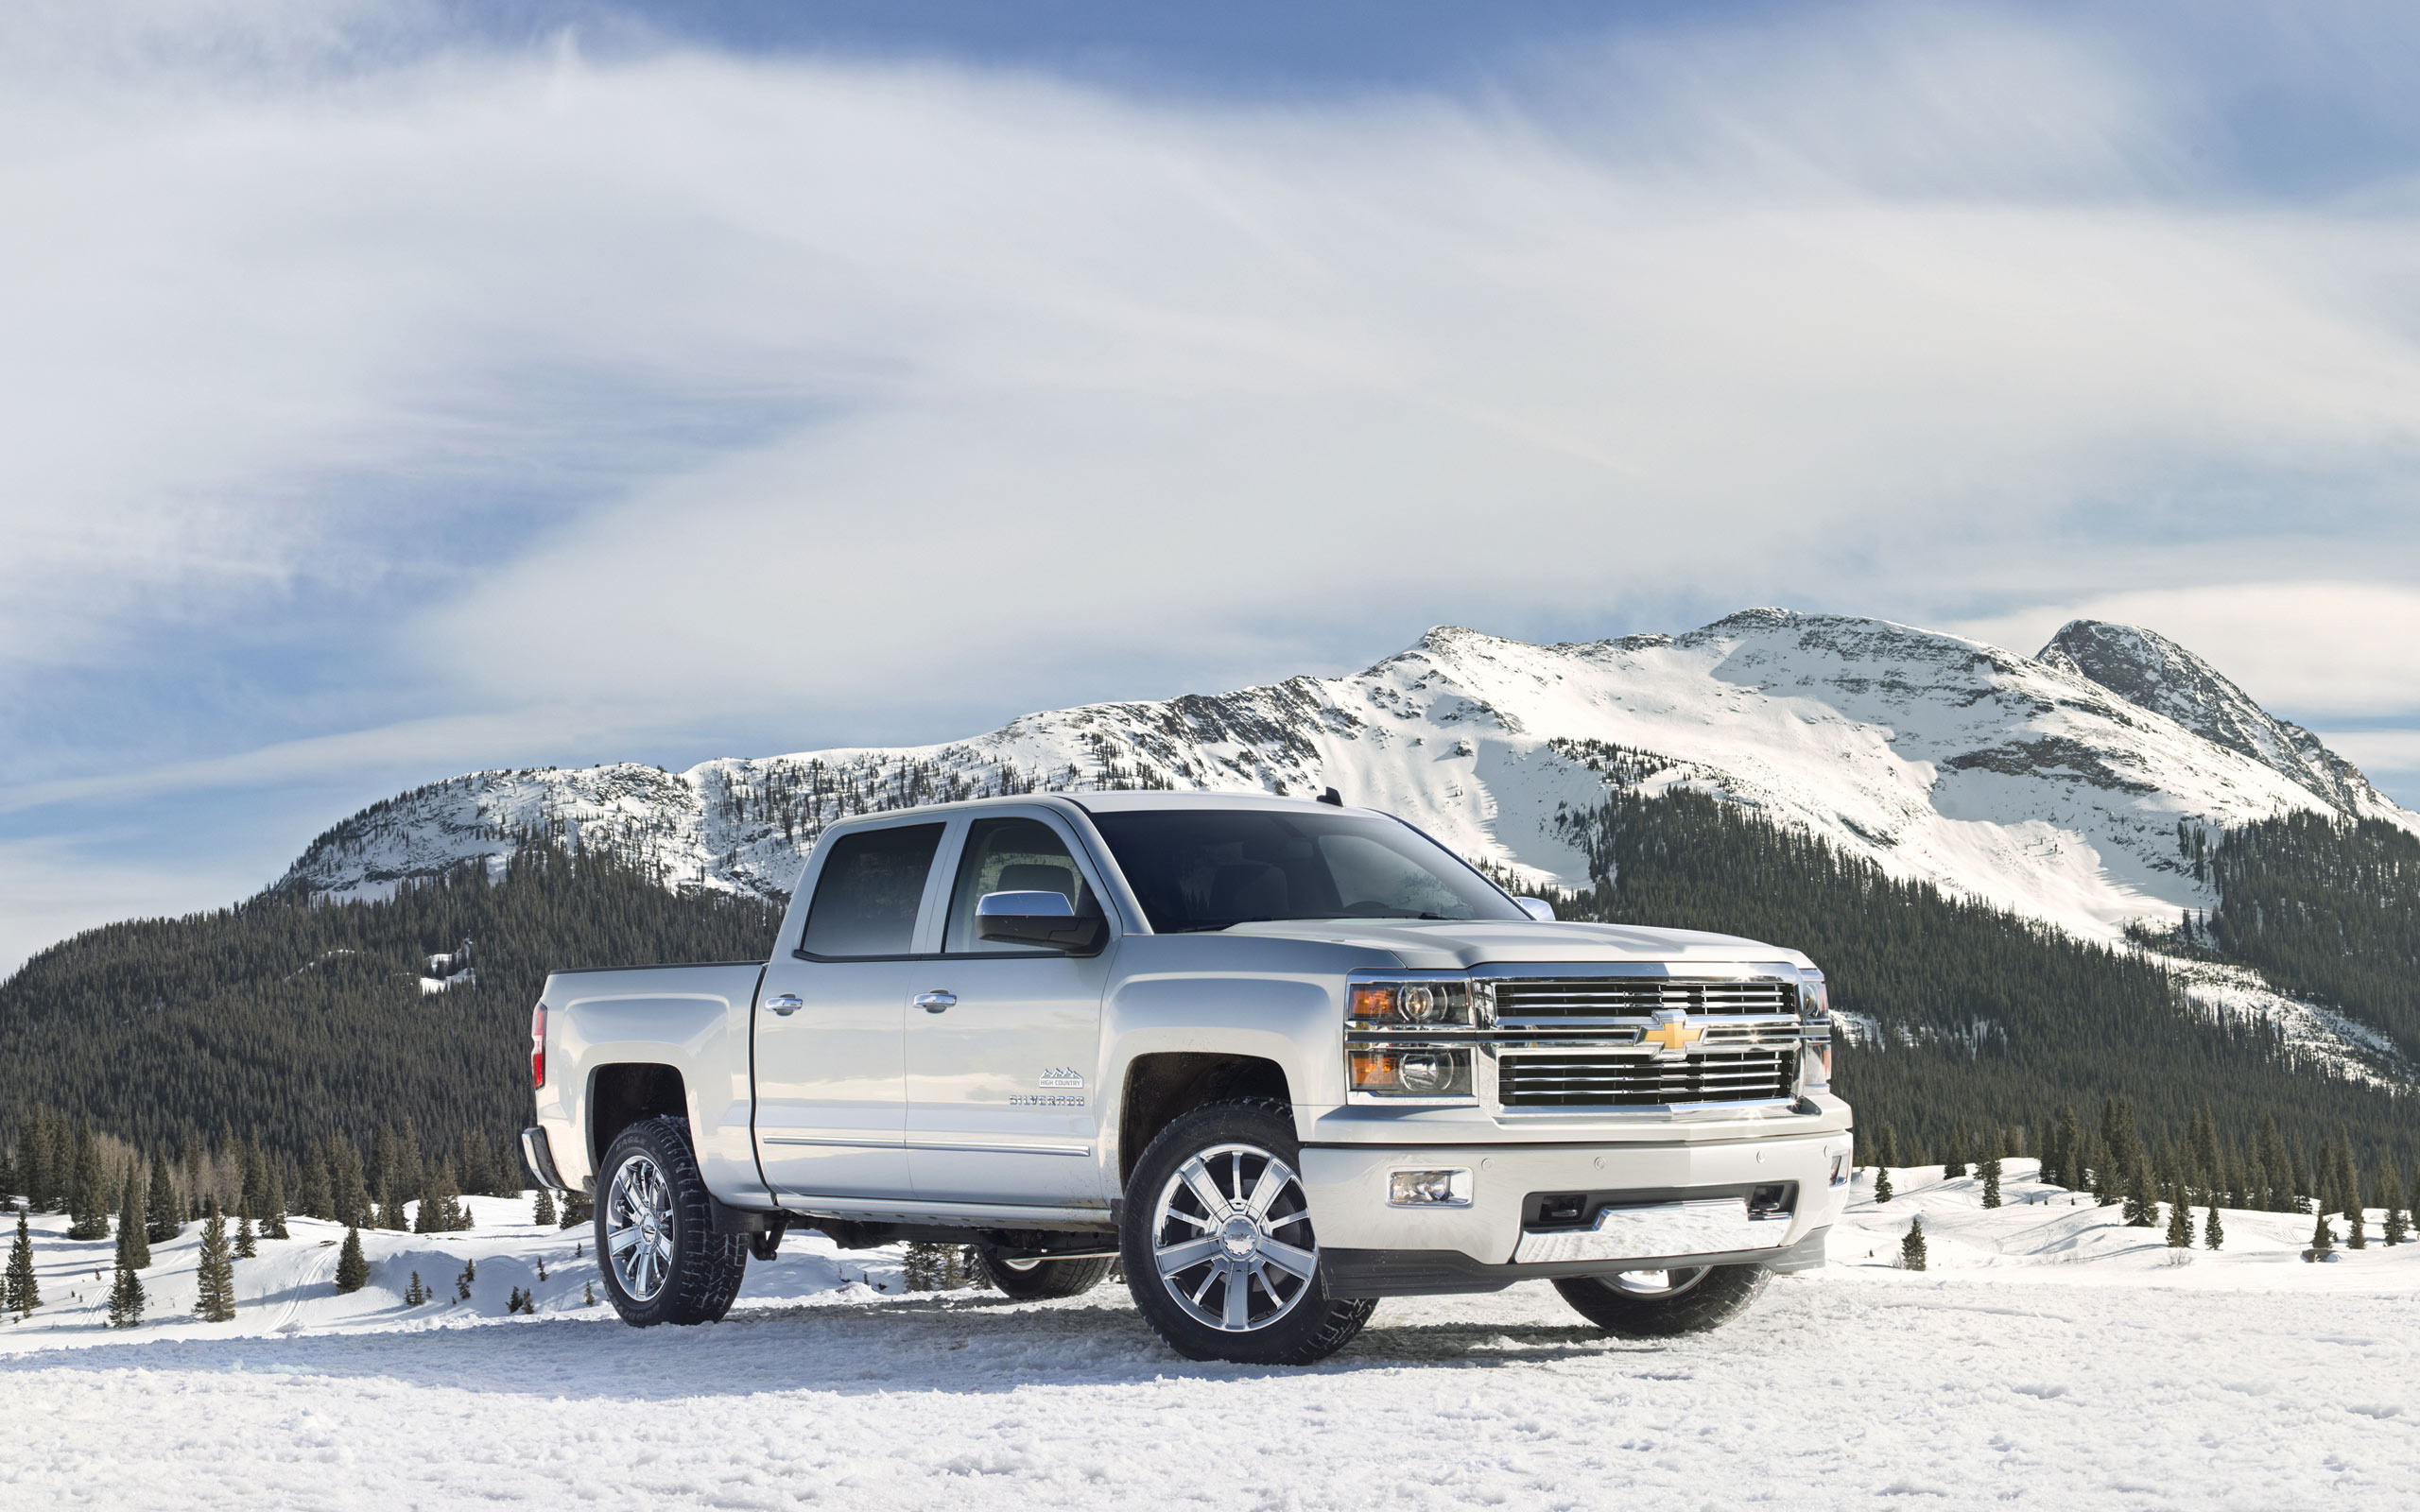 2014 CHEVY SILVERADO  Desktop Nexus Wallpapers